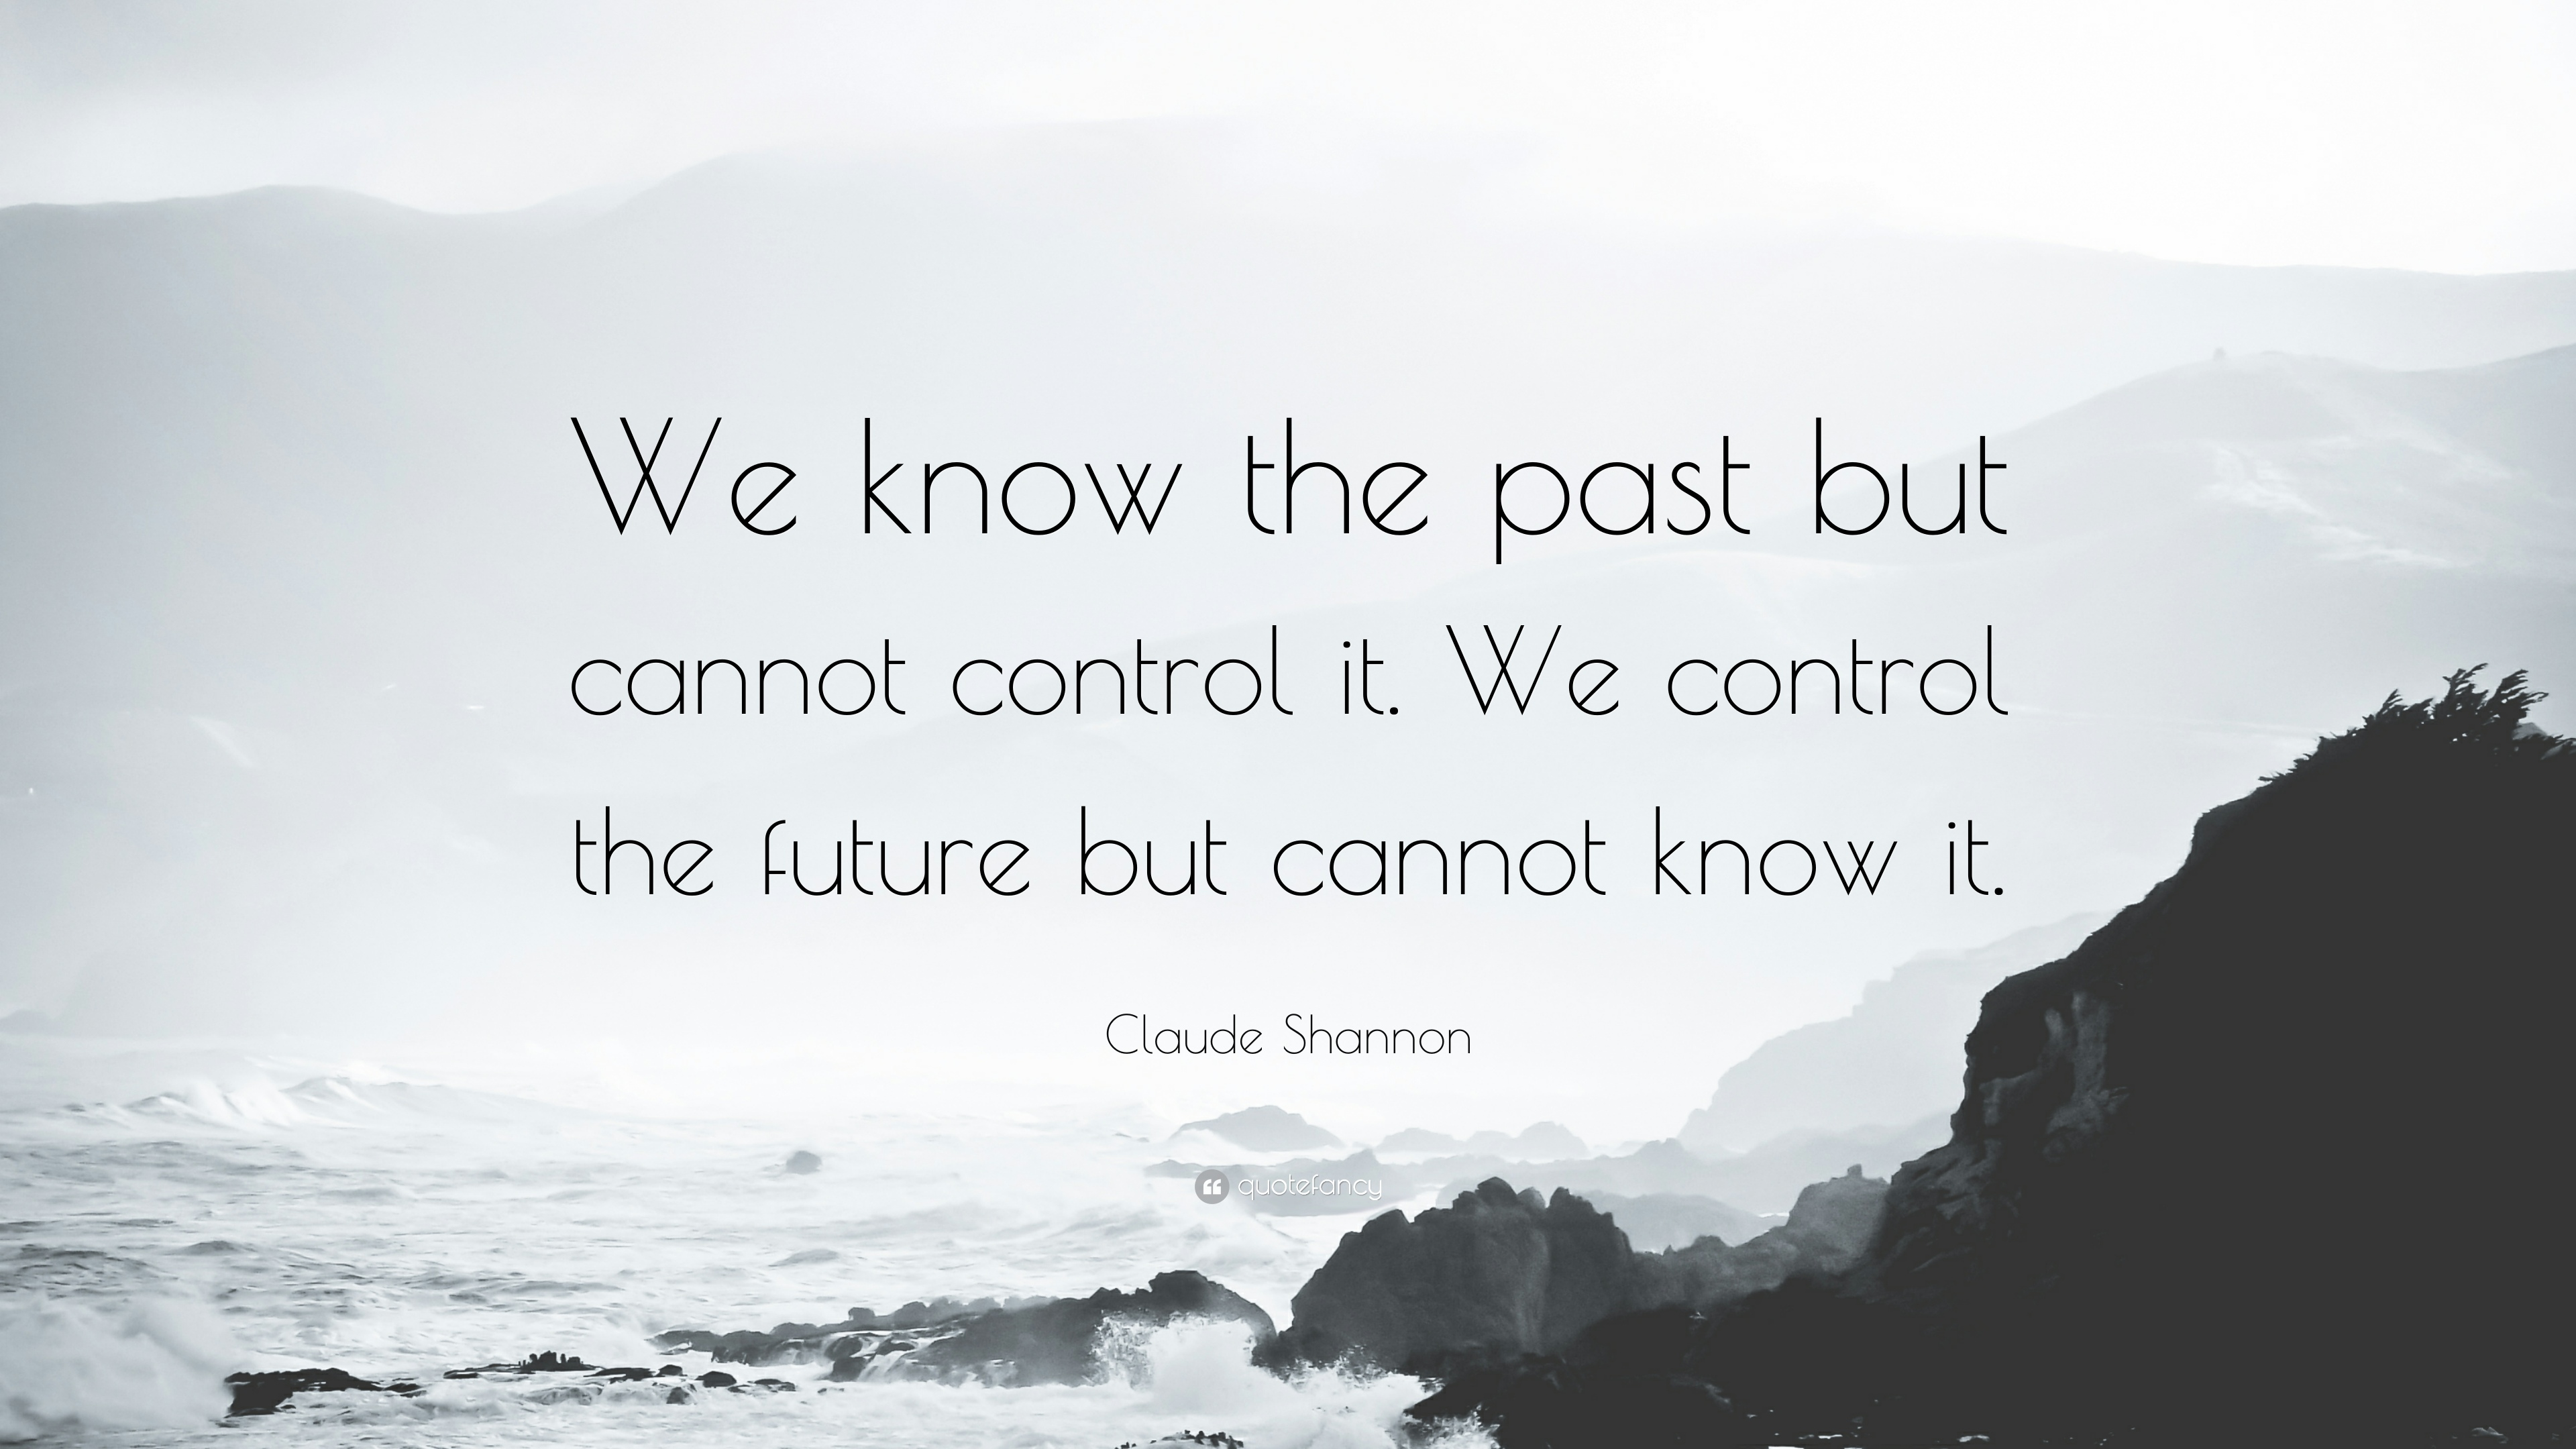 Can we control the future?